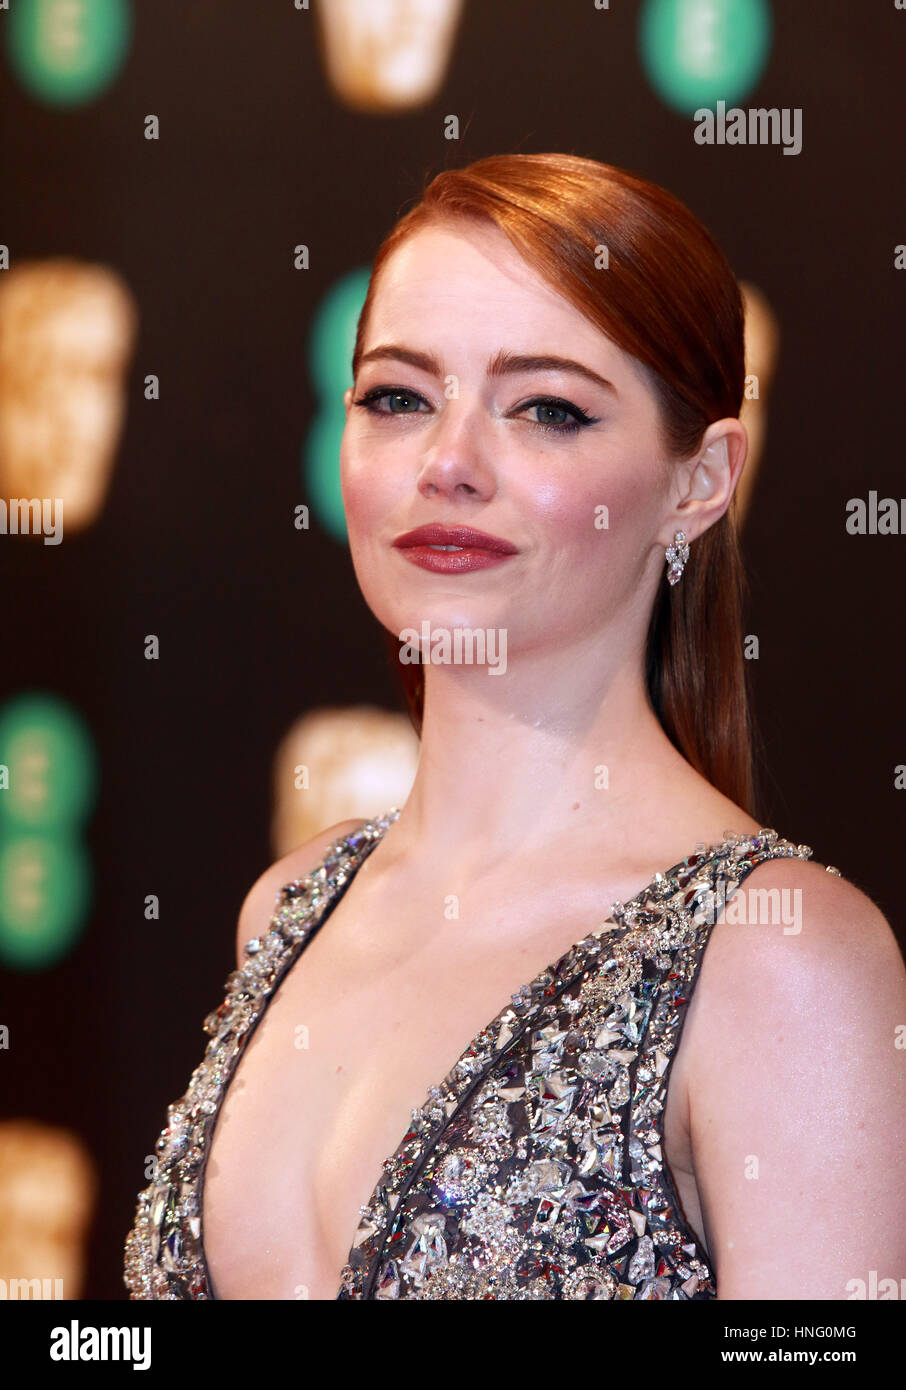 London, UK. 12th February 2017. Emma Stone at the 70th British Academy Film Awards. The EE BAFTA 2017 was held at - Stock Image